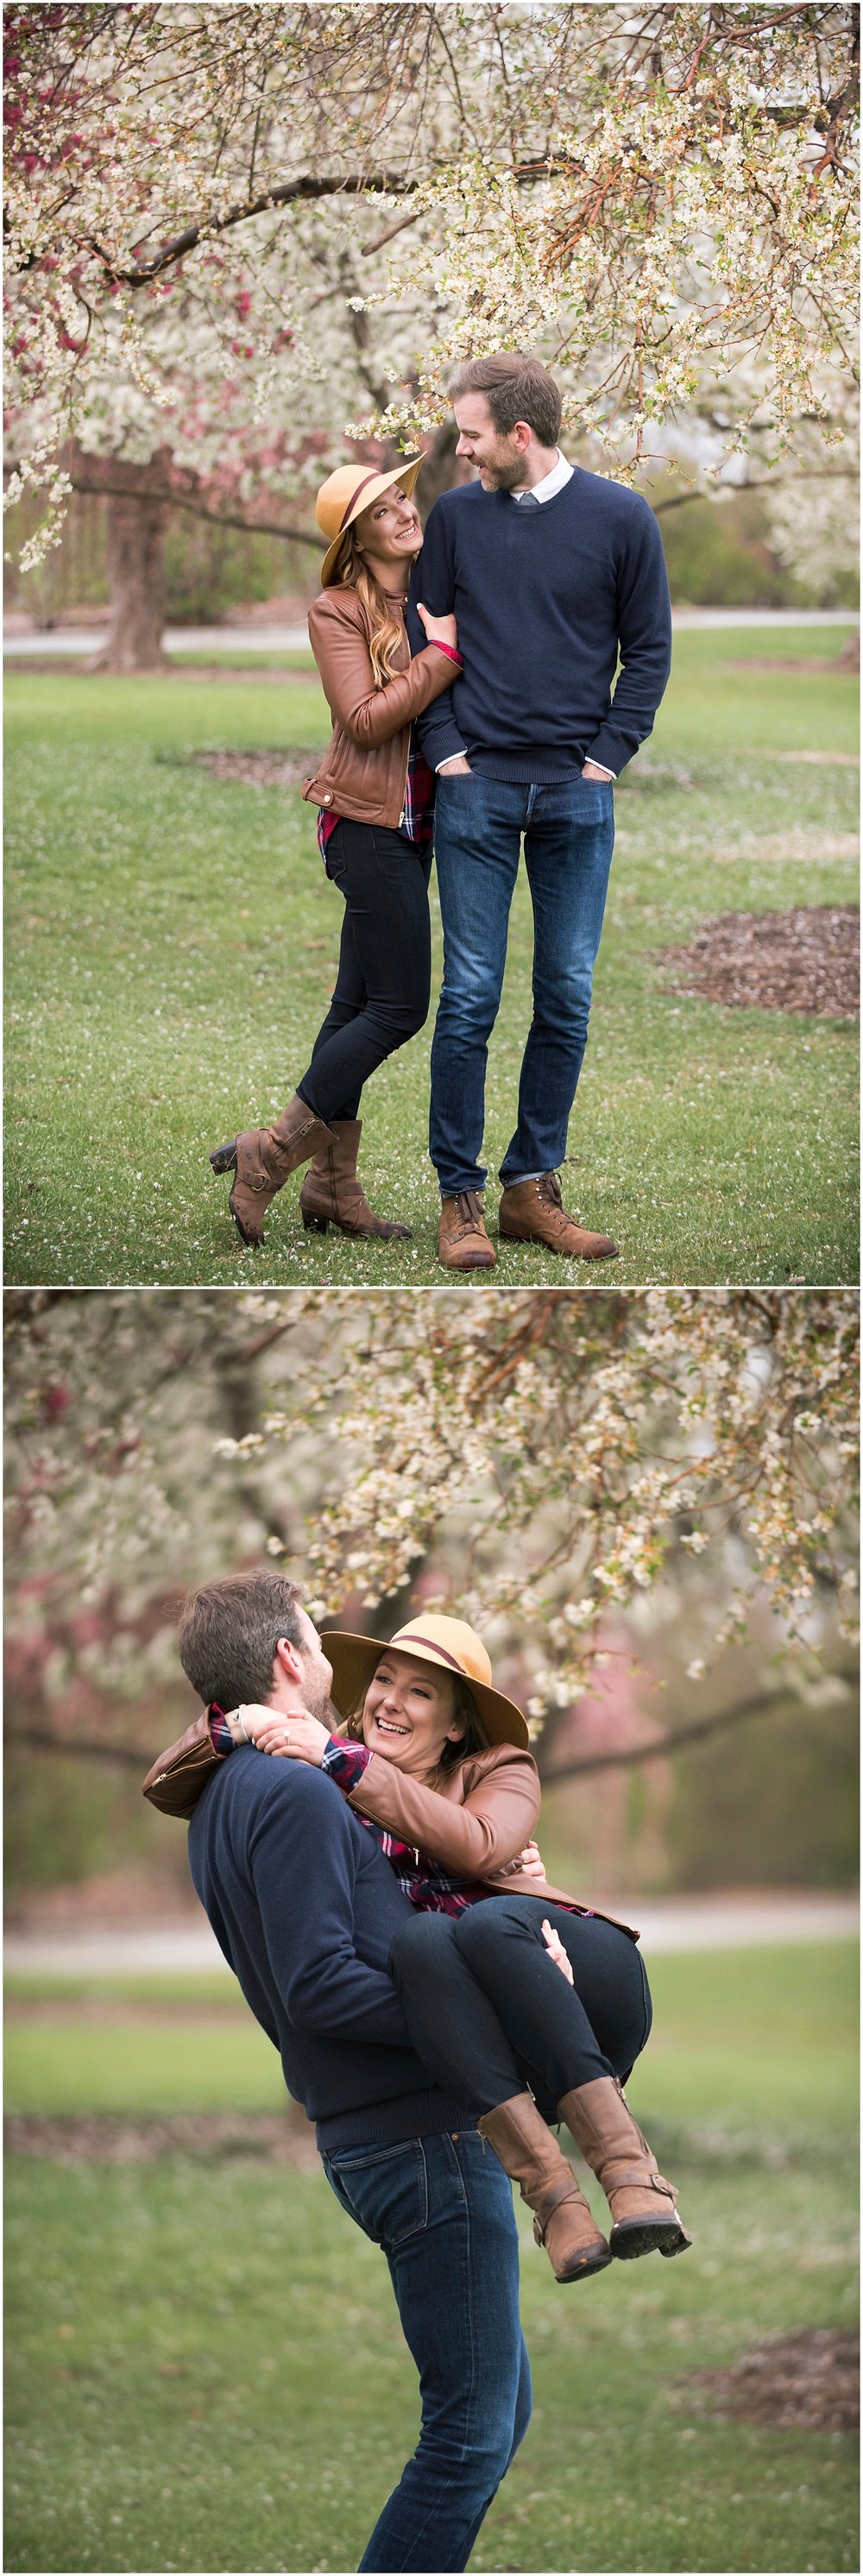 Romantic Photography Cherry Blossom Engagement Photos